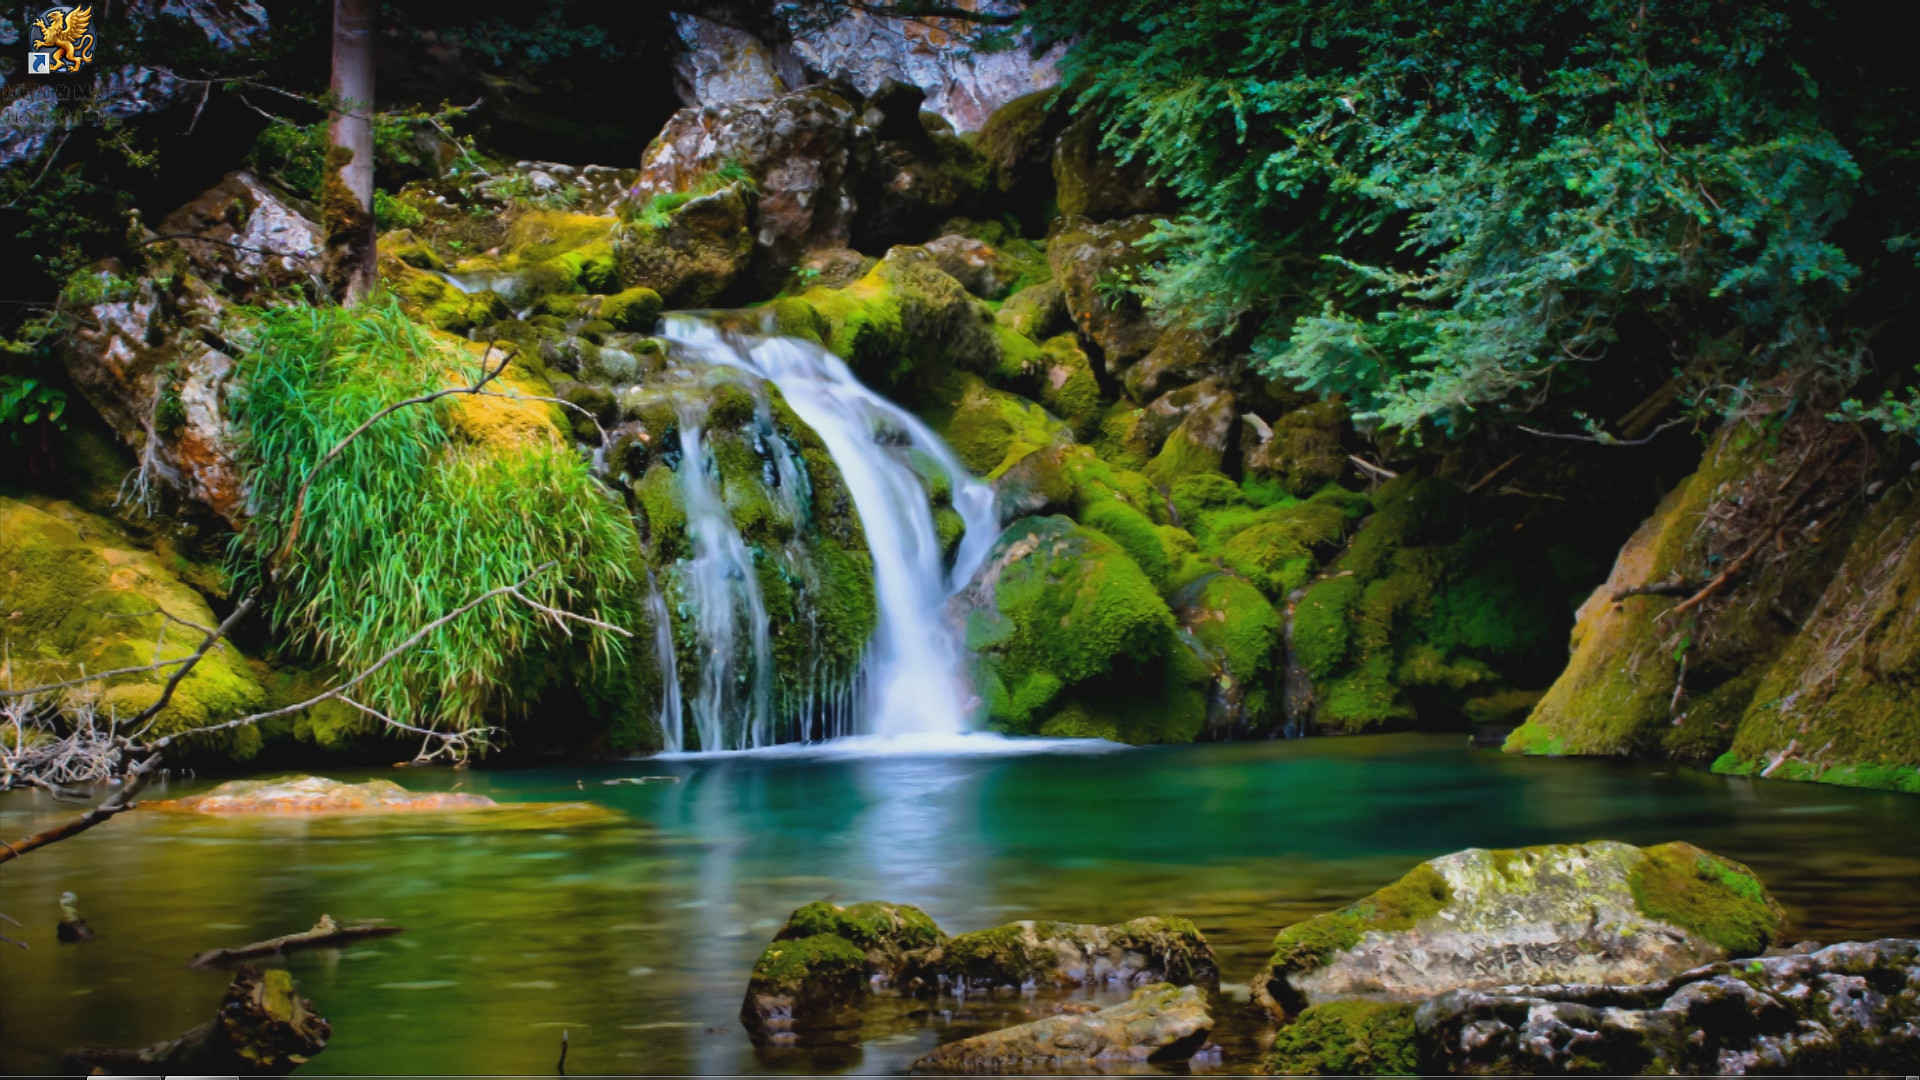 Awesome Water Scenes Images   Water Scenes Wallpapers